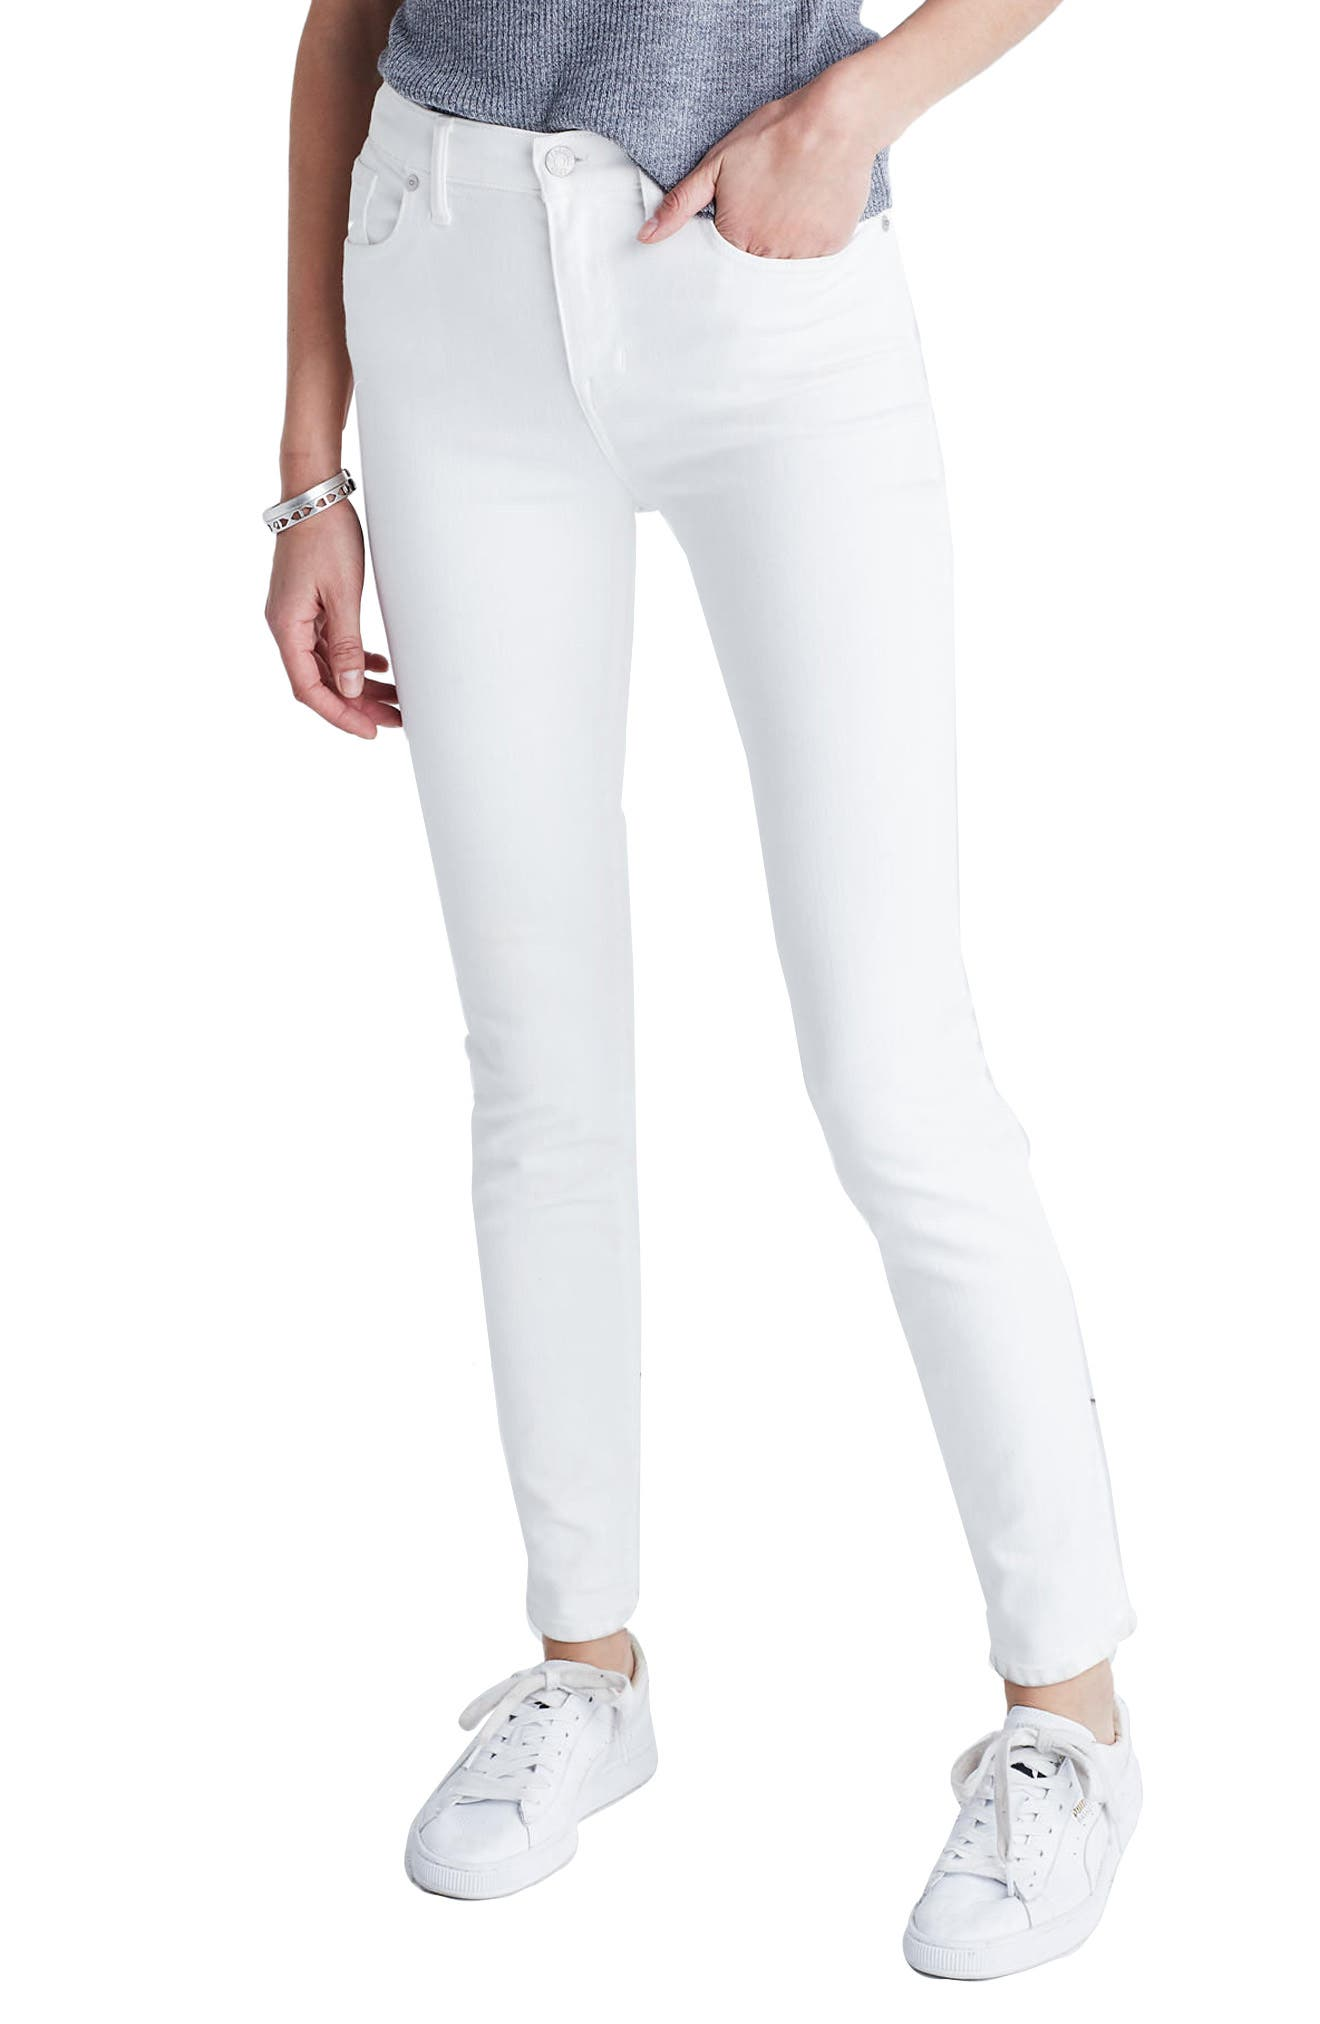 MADEWELL 9-Inch High-Rise Skinny Jeans, Main, color, 100